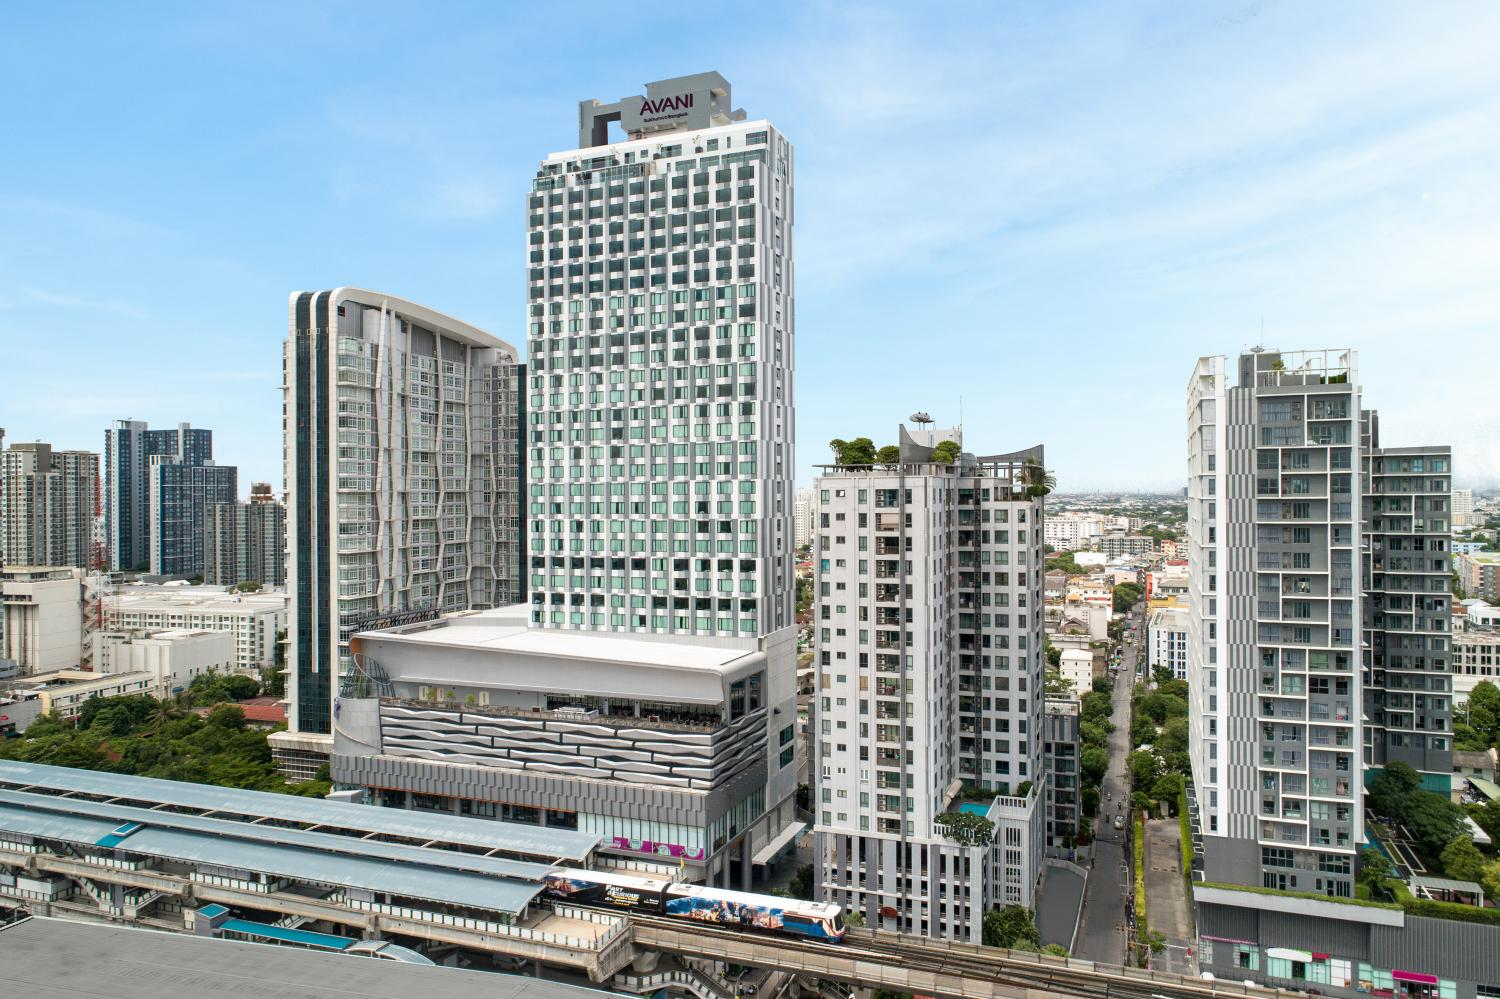 The 382-room Avani Sukhumvit Bangkok hotel is set for an official grand opening on Dec 1.